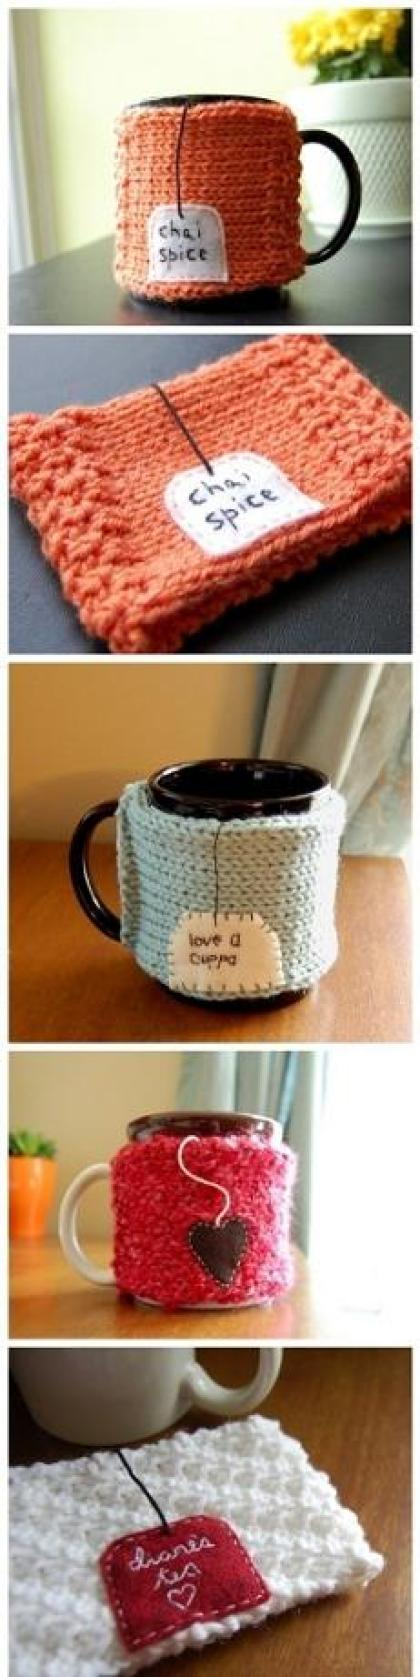 crochet-craft-ideas